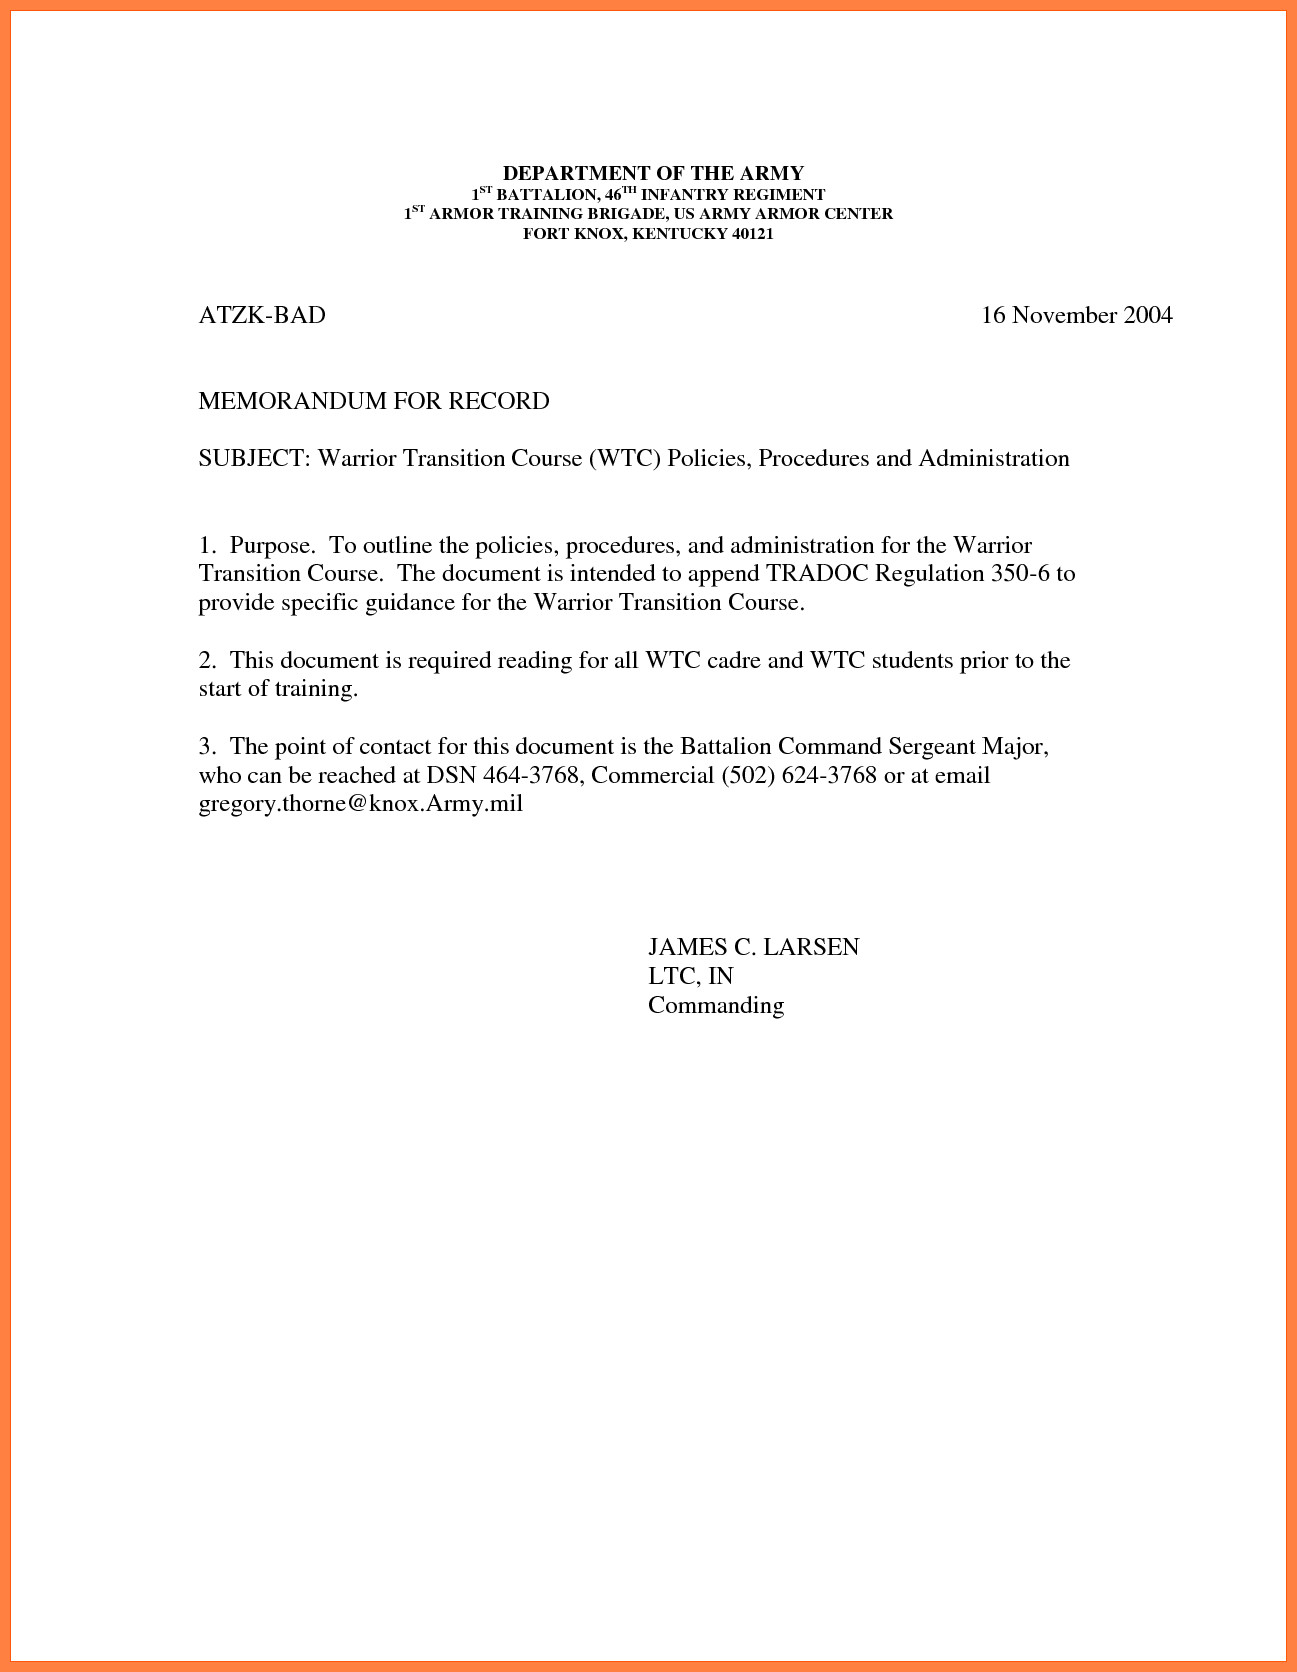 Memorandum for Record Template 9 Memorandum for Record Army